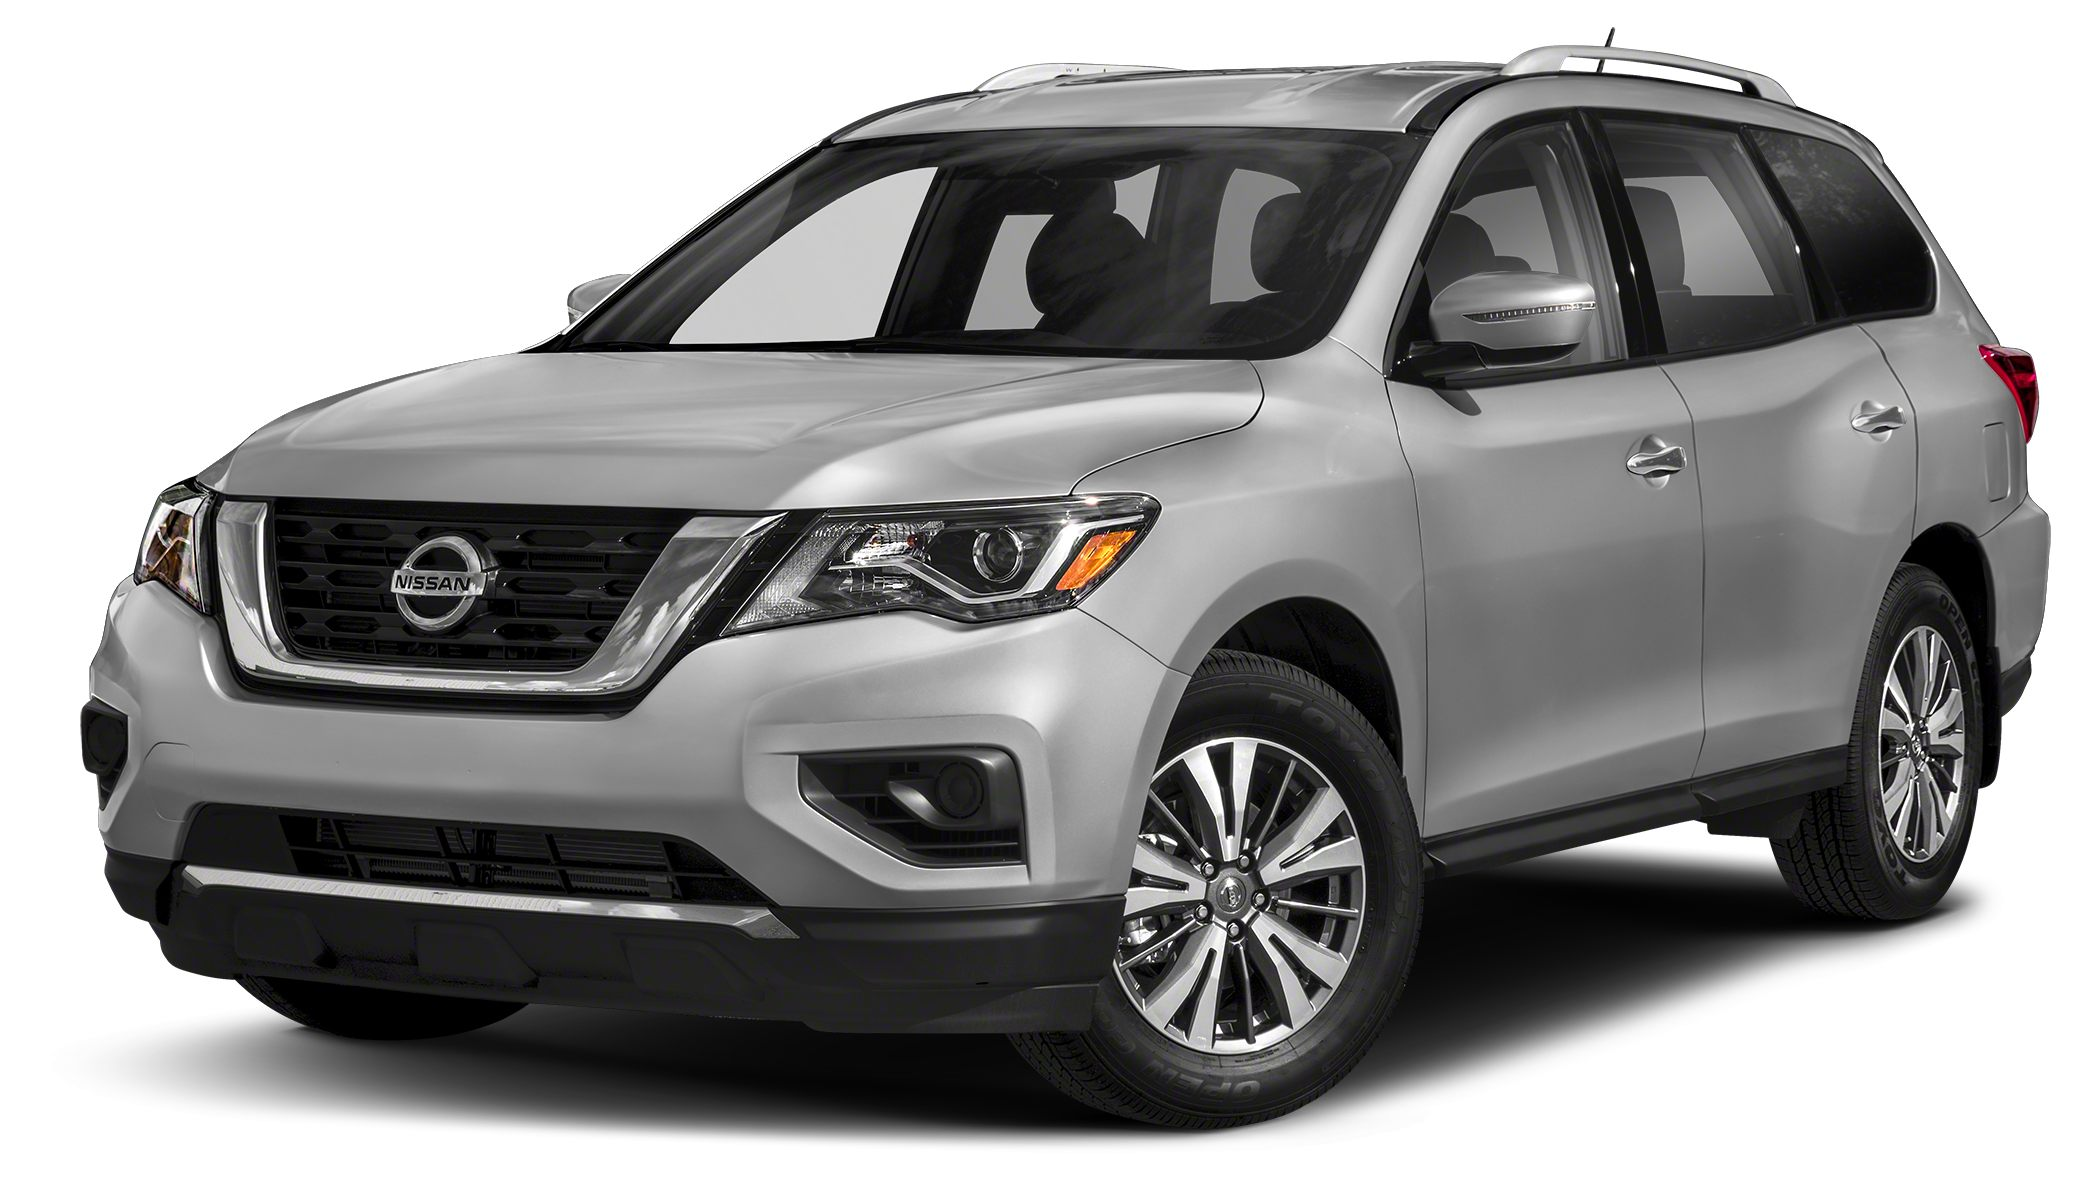 2018 Nissan Pathfinder S Miles 6Color Brilliant Silver Stock 7180414 VIN 5N1DR2MNXJC650748